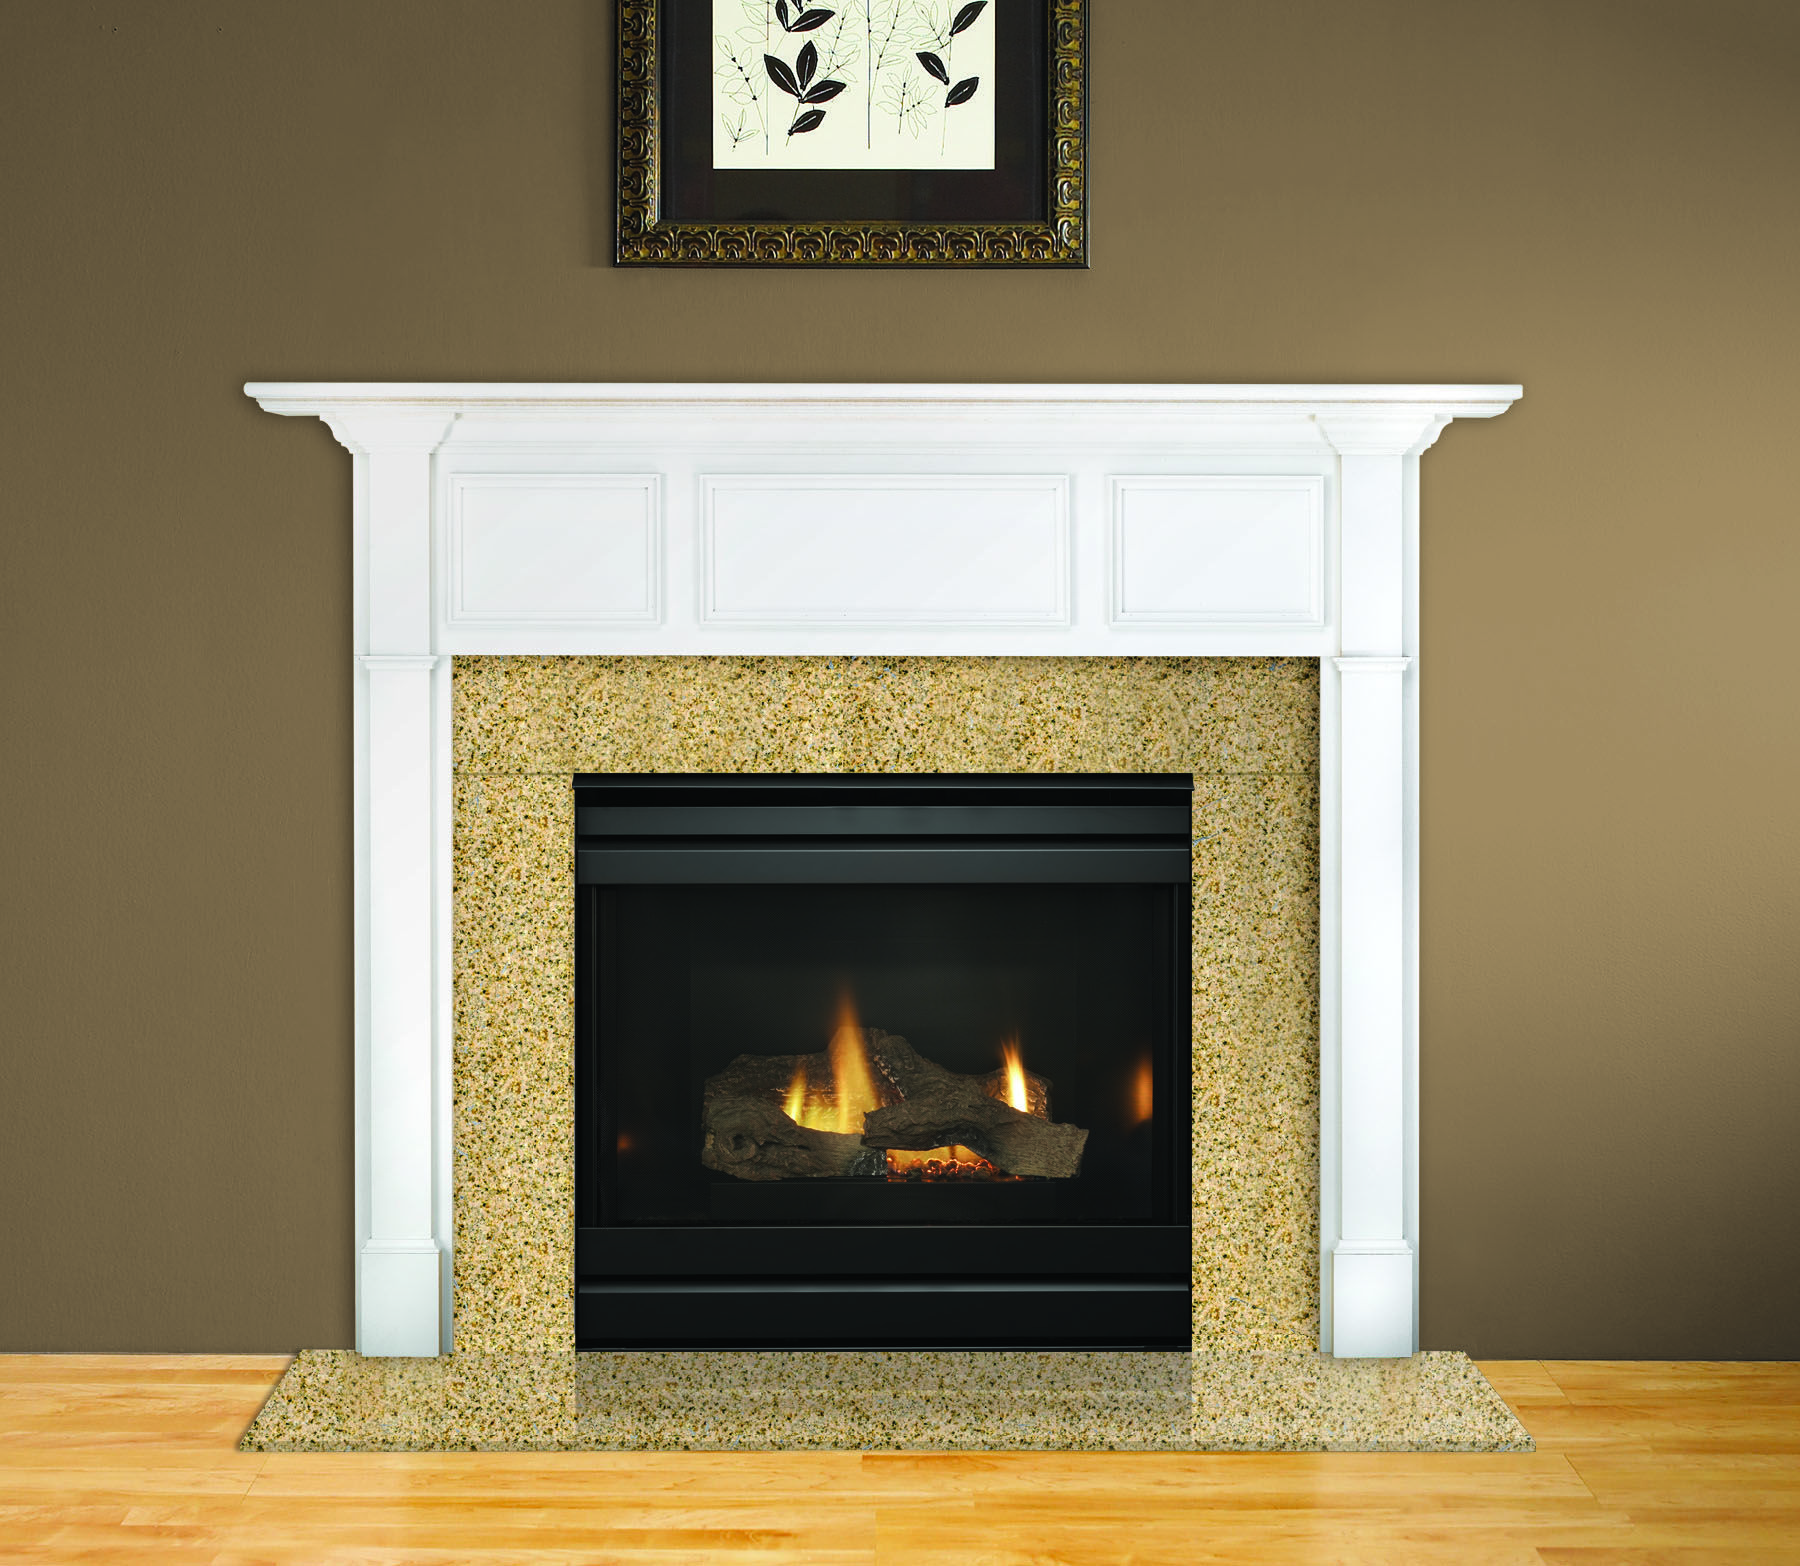 Home Corner Gas Fireplace Gas Fireplace Artificial Fireplace